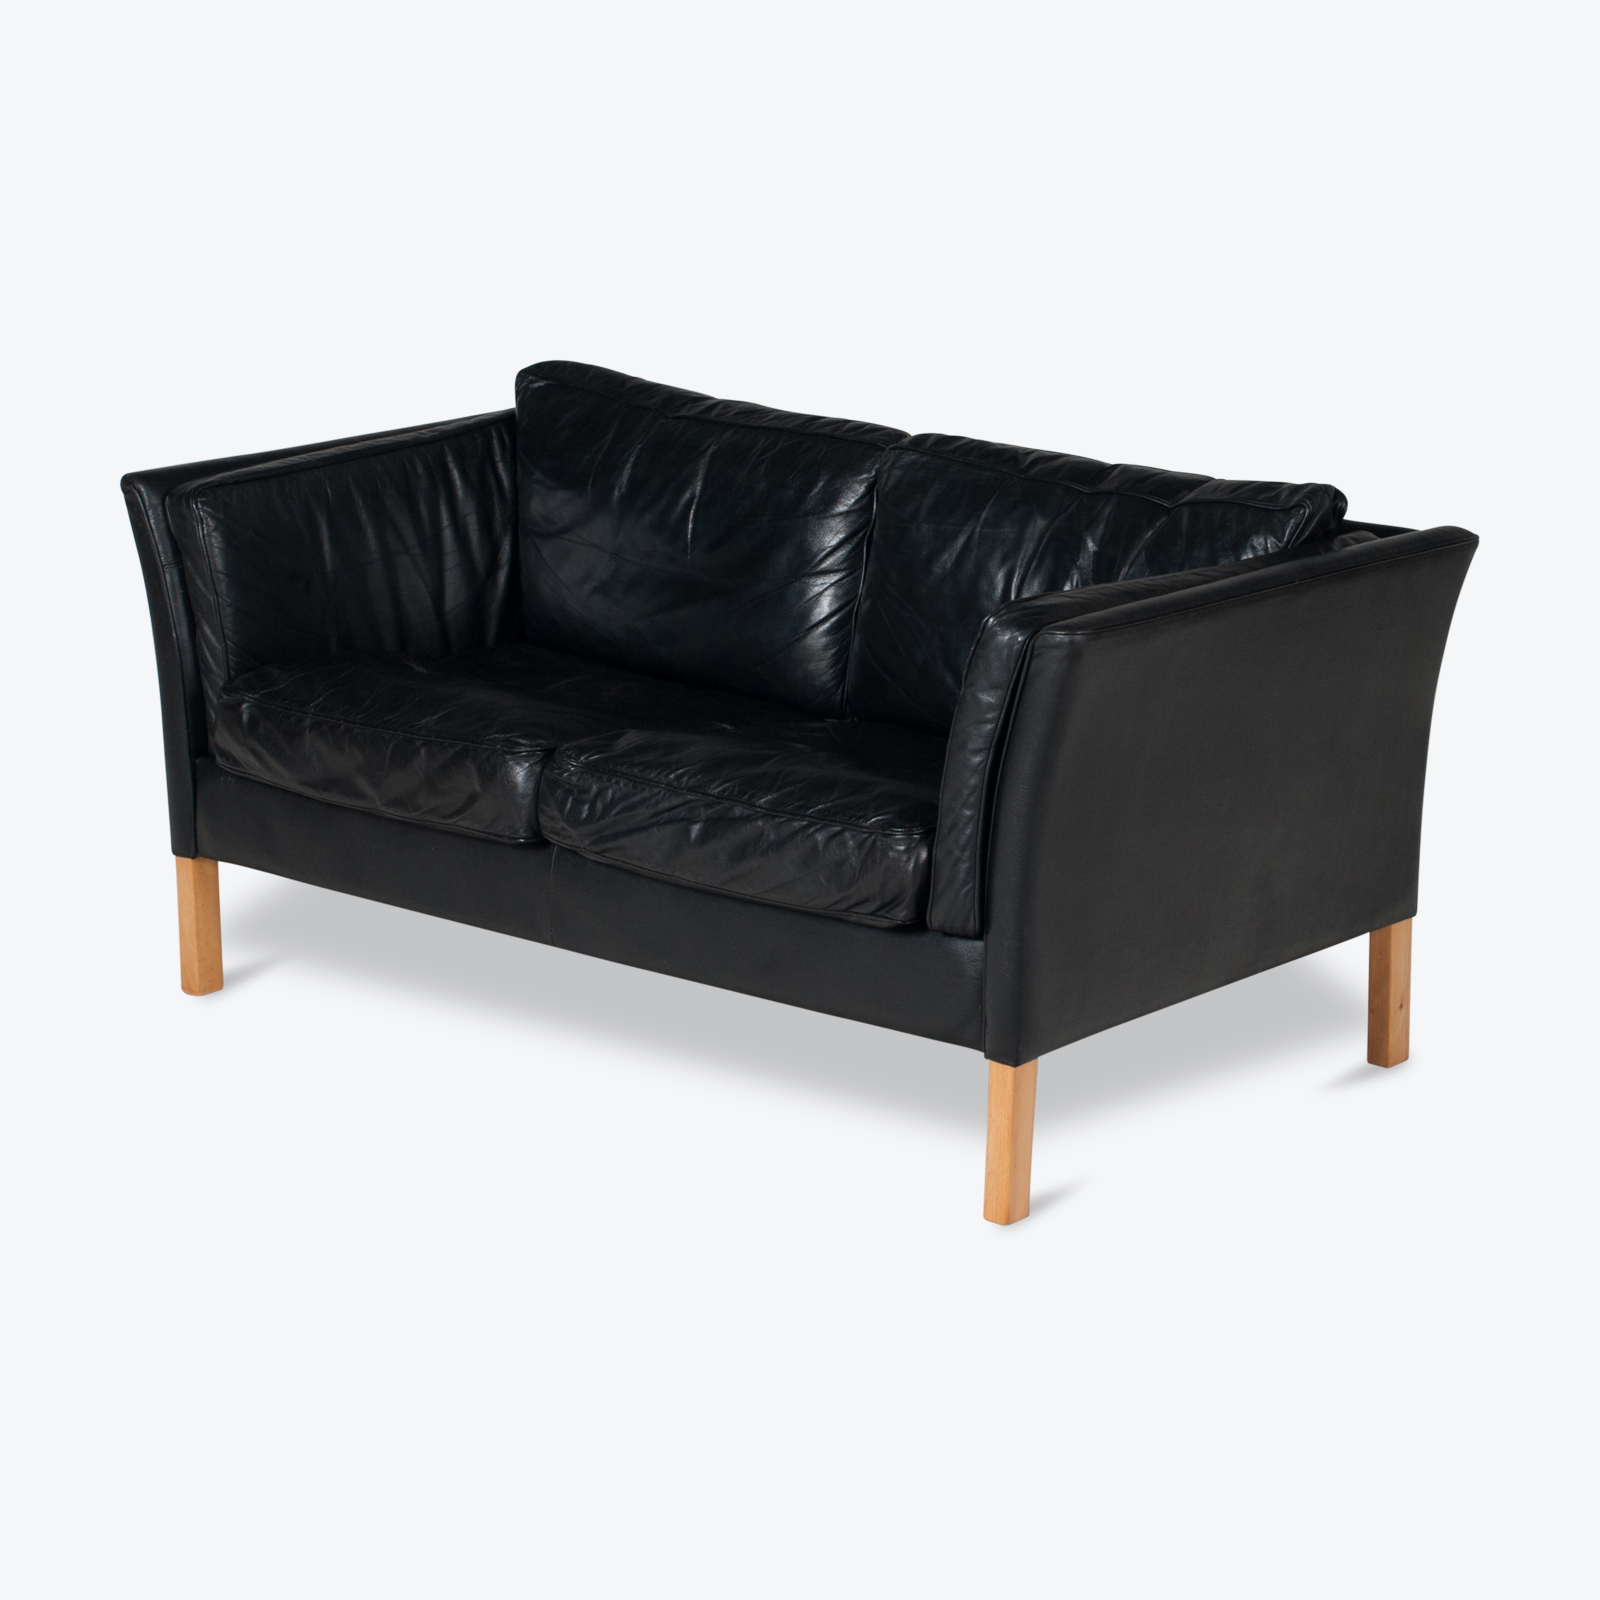 2 Seat Sofa By Stouby In Black Leather With Beech Legs, 1960s, Denmark Hero